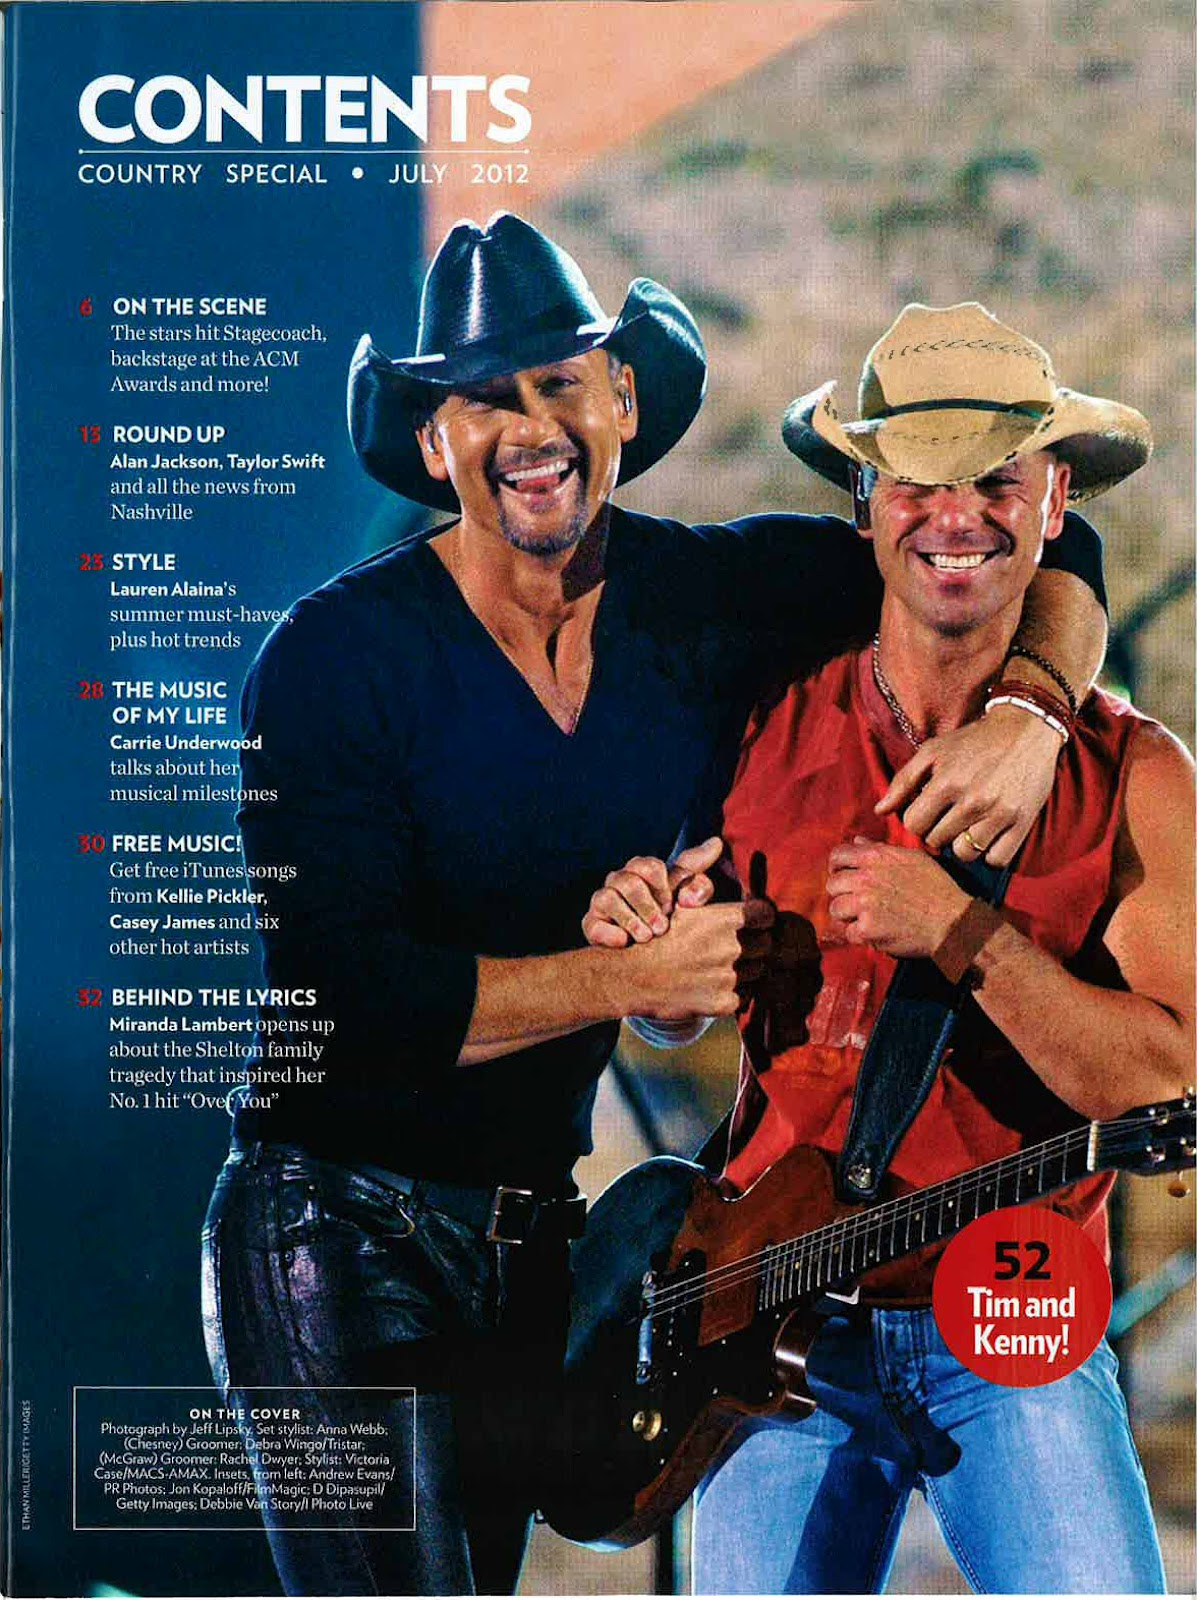 Kenny Chesney Blue Chair Bay Hats Hanging Yoga Dorfman Pacific In The News People Magazine Features Kc36 Wearing His Signature Hat